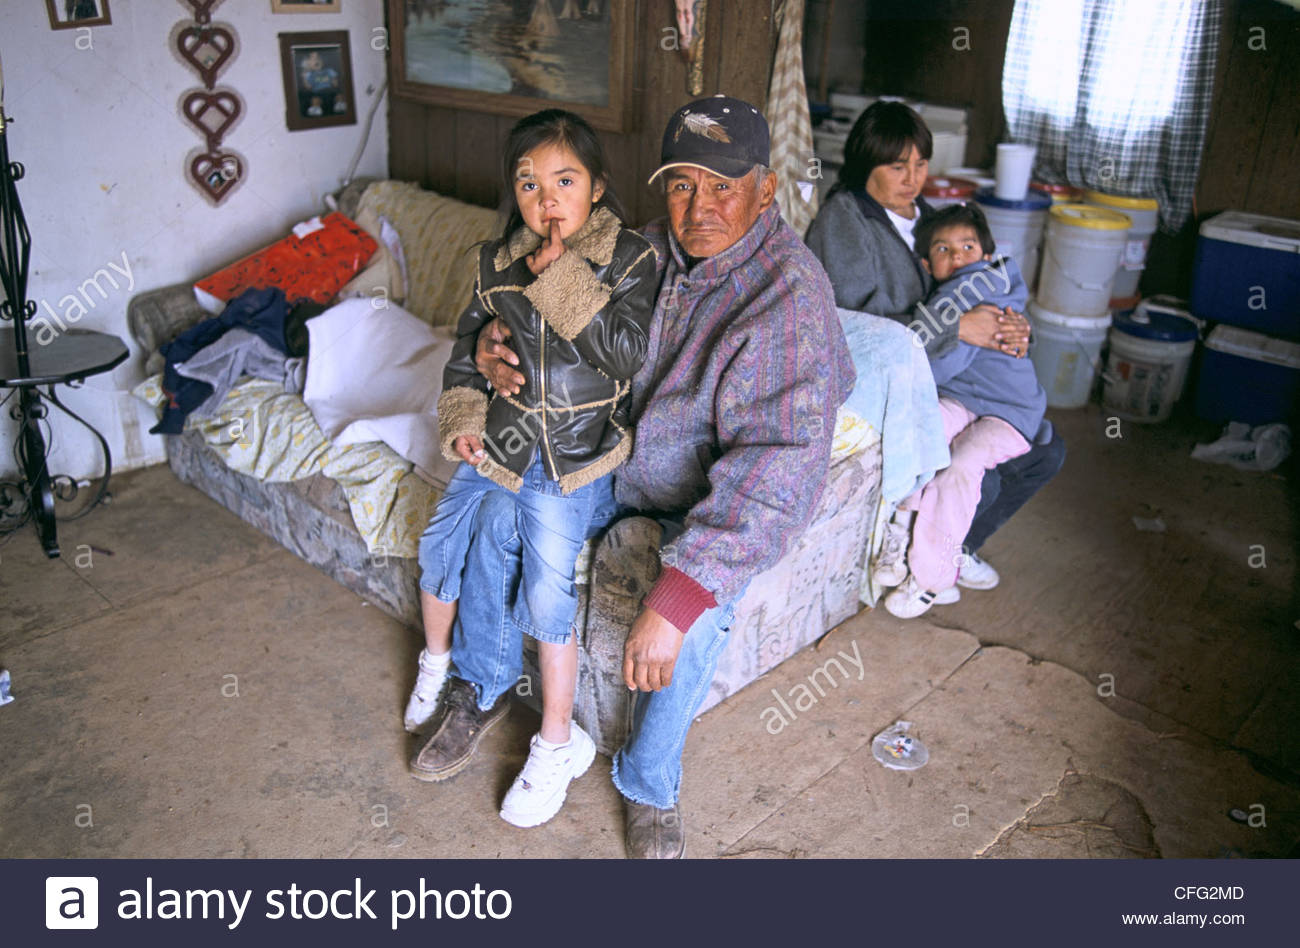 A Navajo woman with her father and her children. - Stock Image